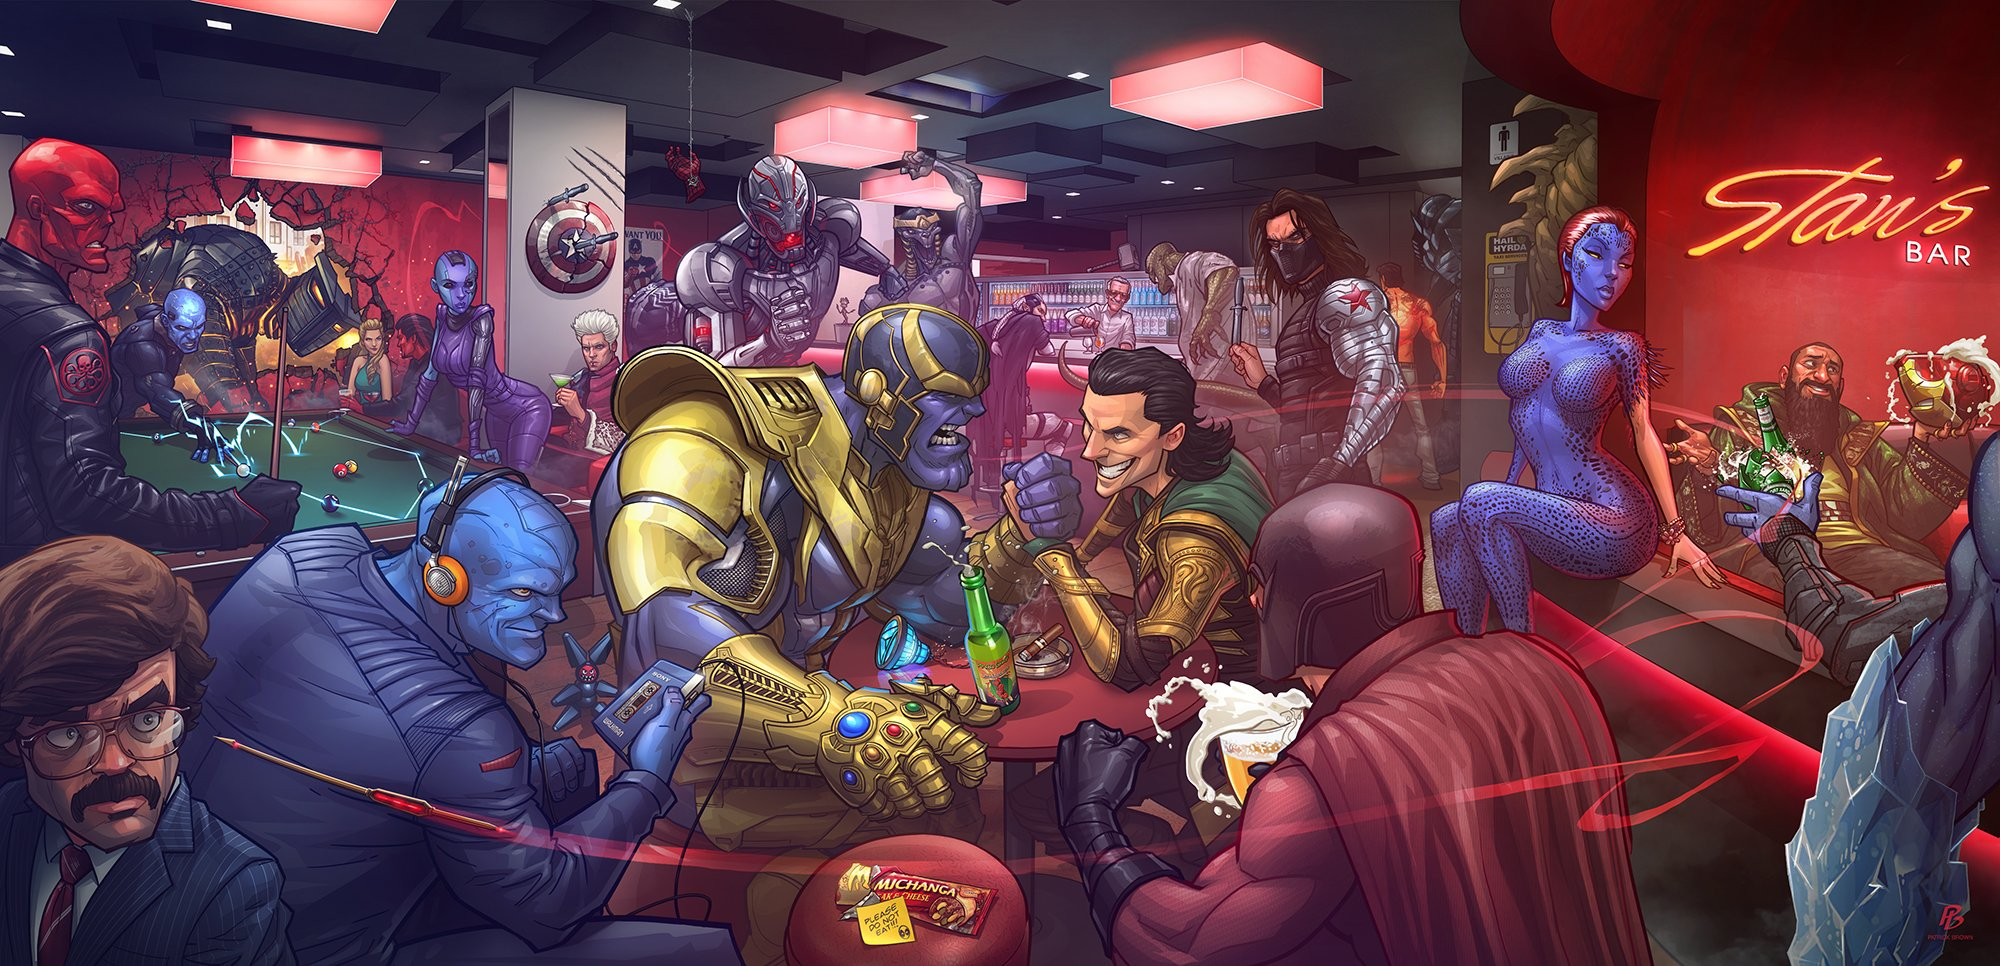 Marvel Villains by Patrick Brown - Изображение 1